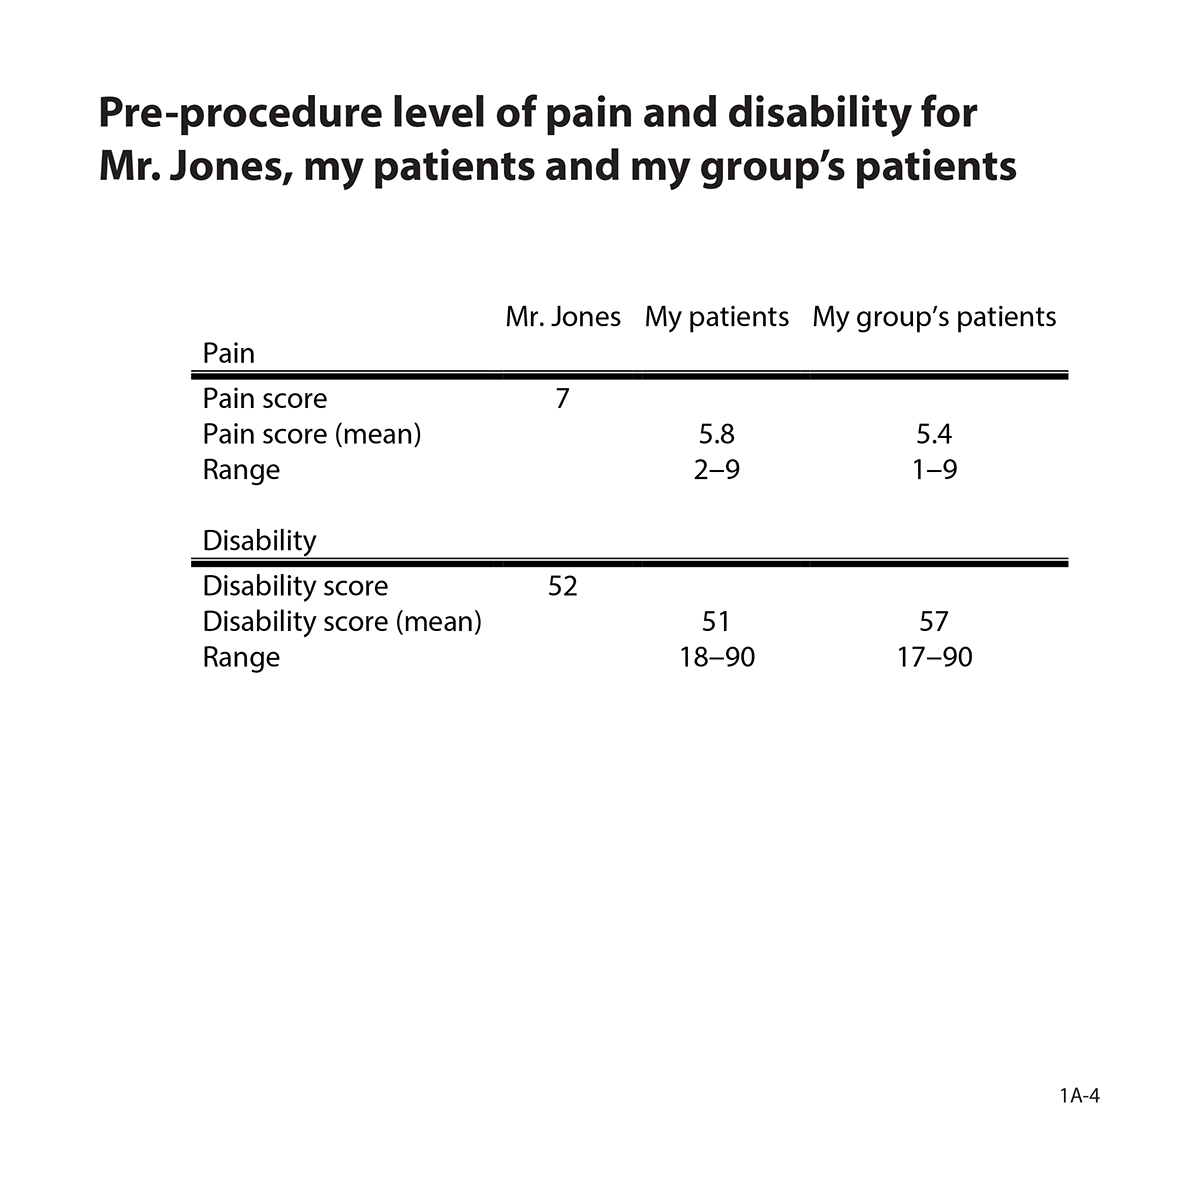 Table showing pre-procedure level of pain and disability for Mr. Jones, my patients, and my group's patients.